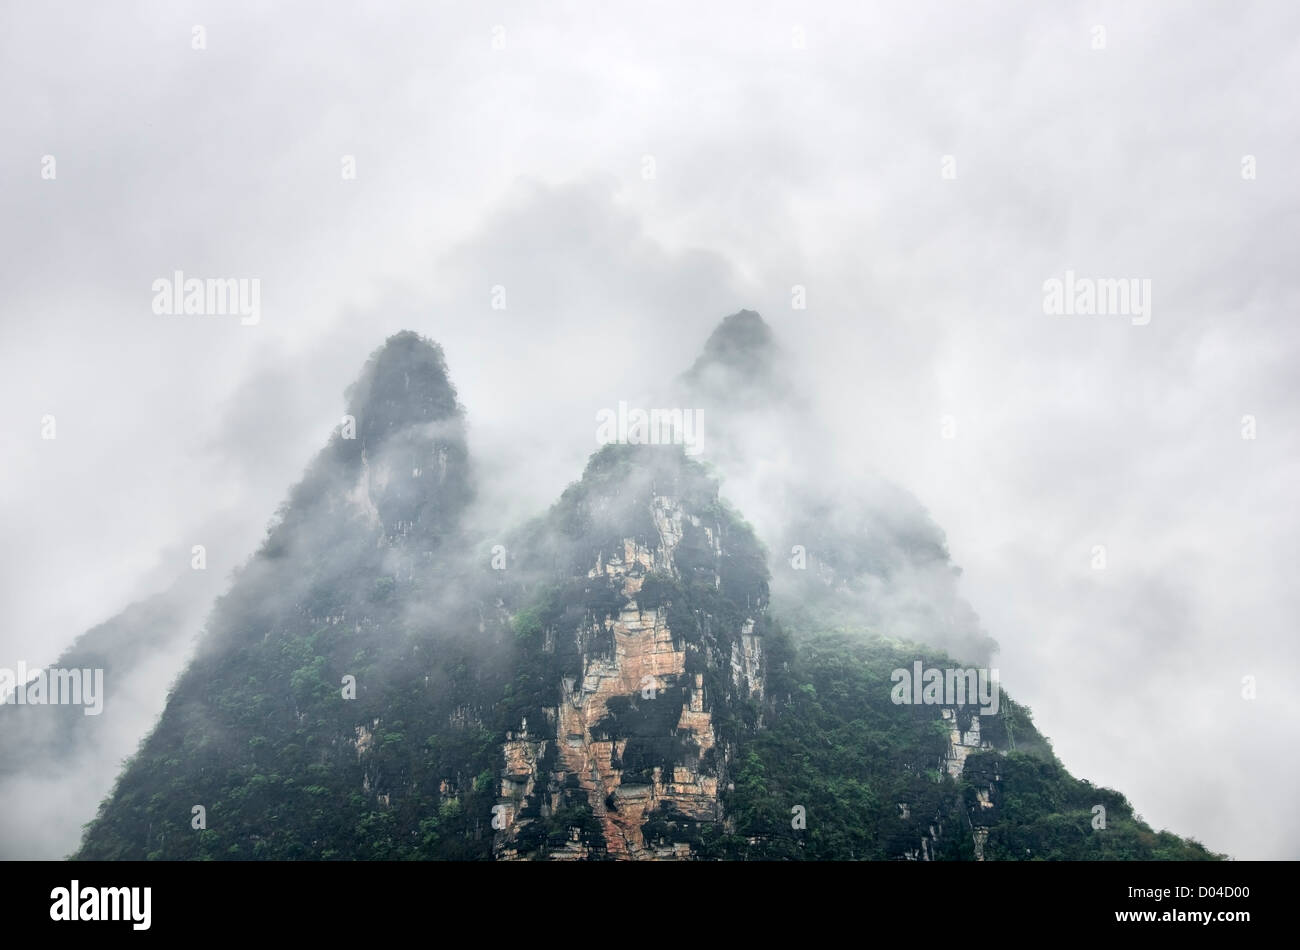 Karst Hills Surrounded By Mist Like in a Chinese Painting Stock Photo